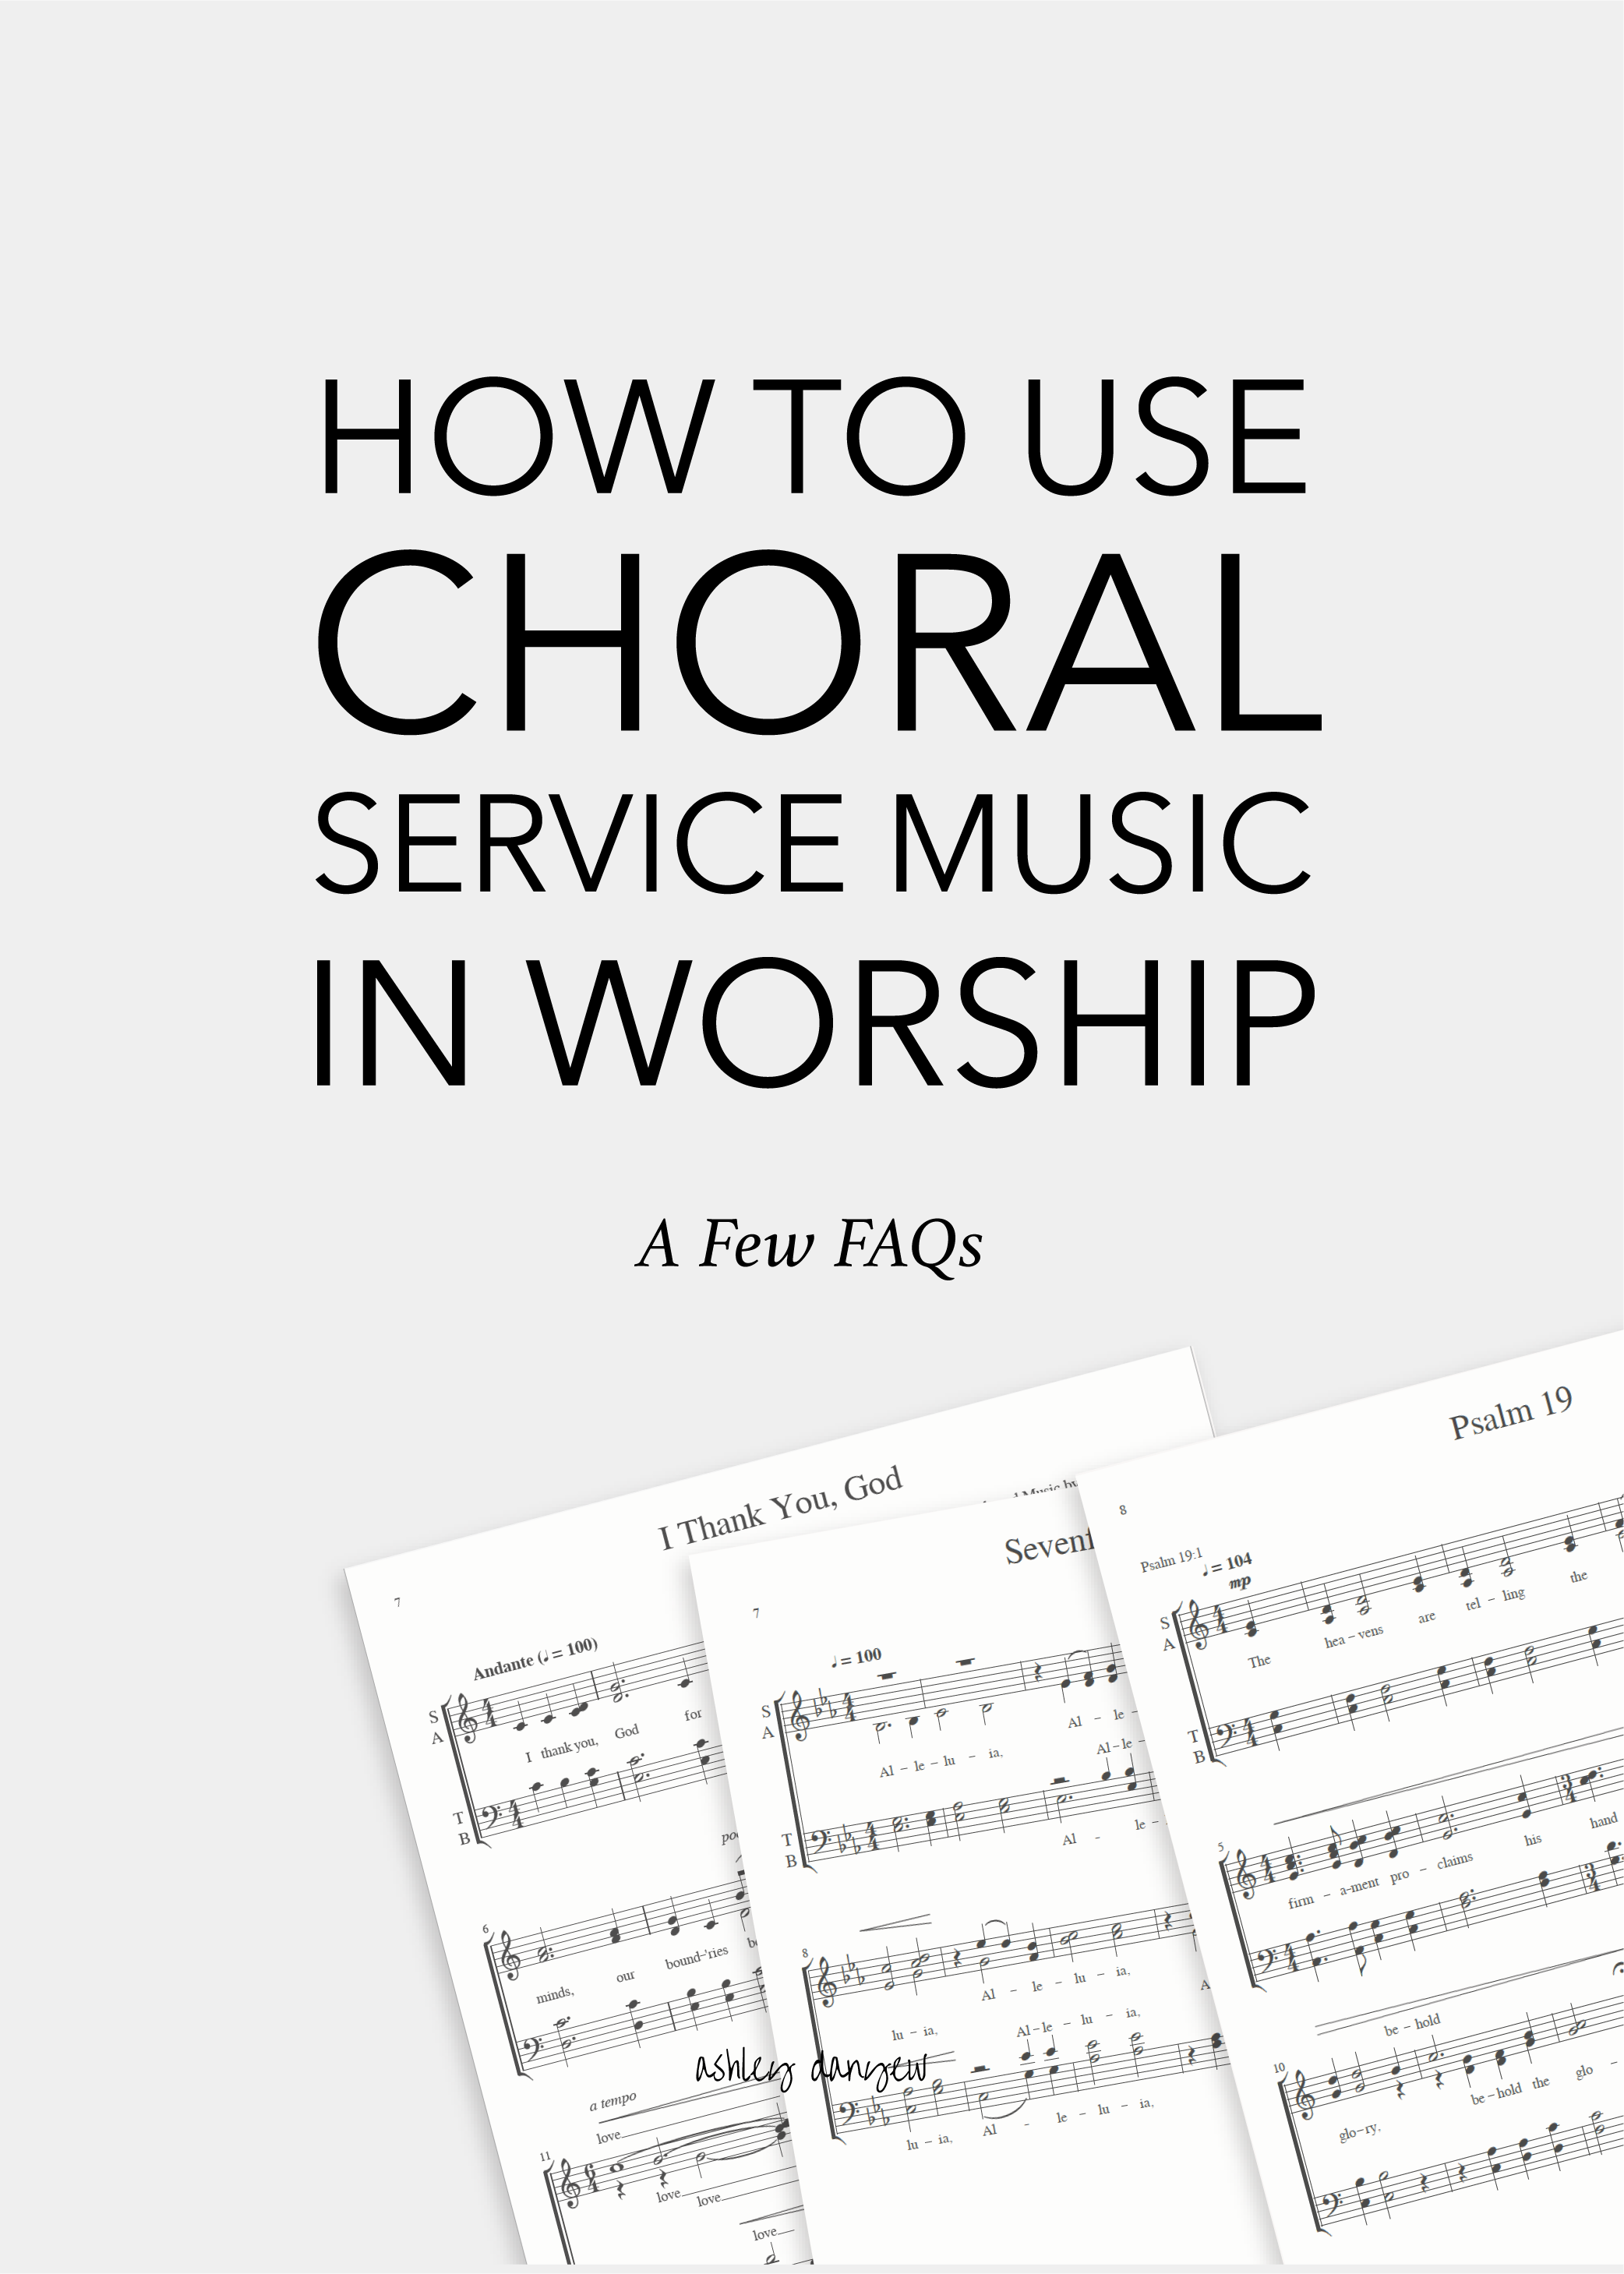 How to Use Choral Service Music in Worship-43.png